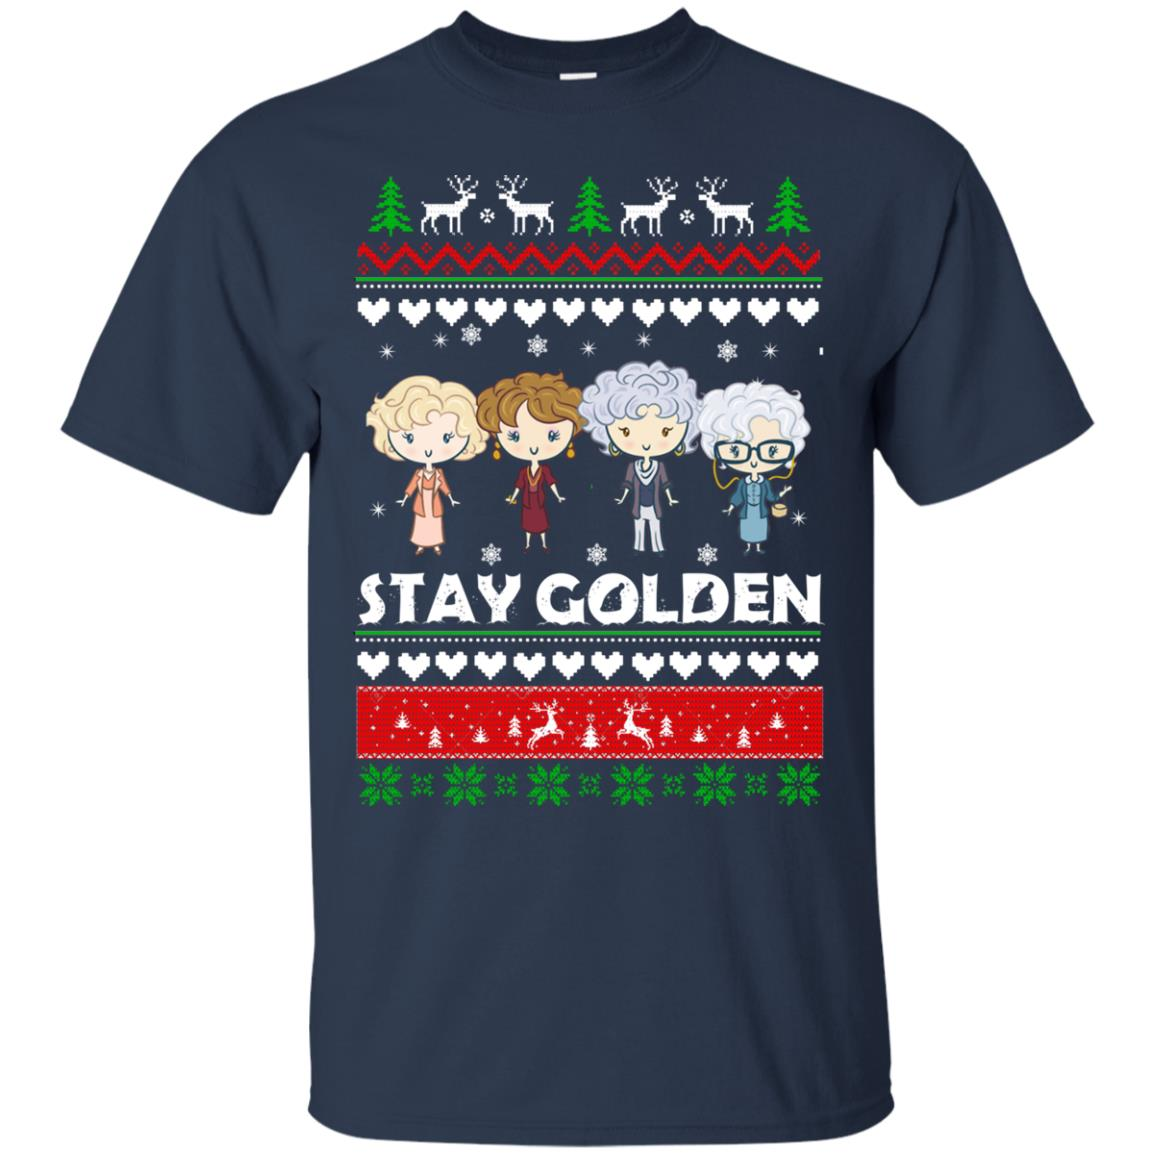 image 700 - Golden Girls Stay Golden Ugly Christmas Sweater, Hoodie